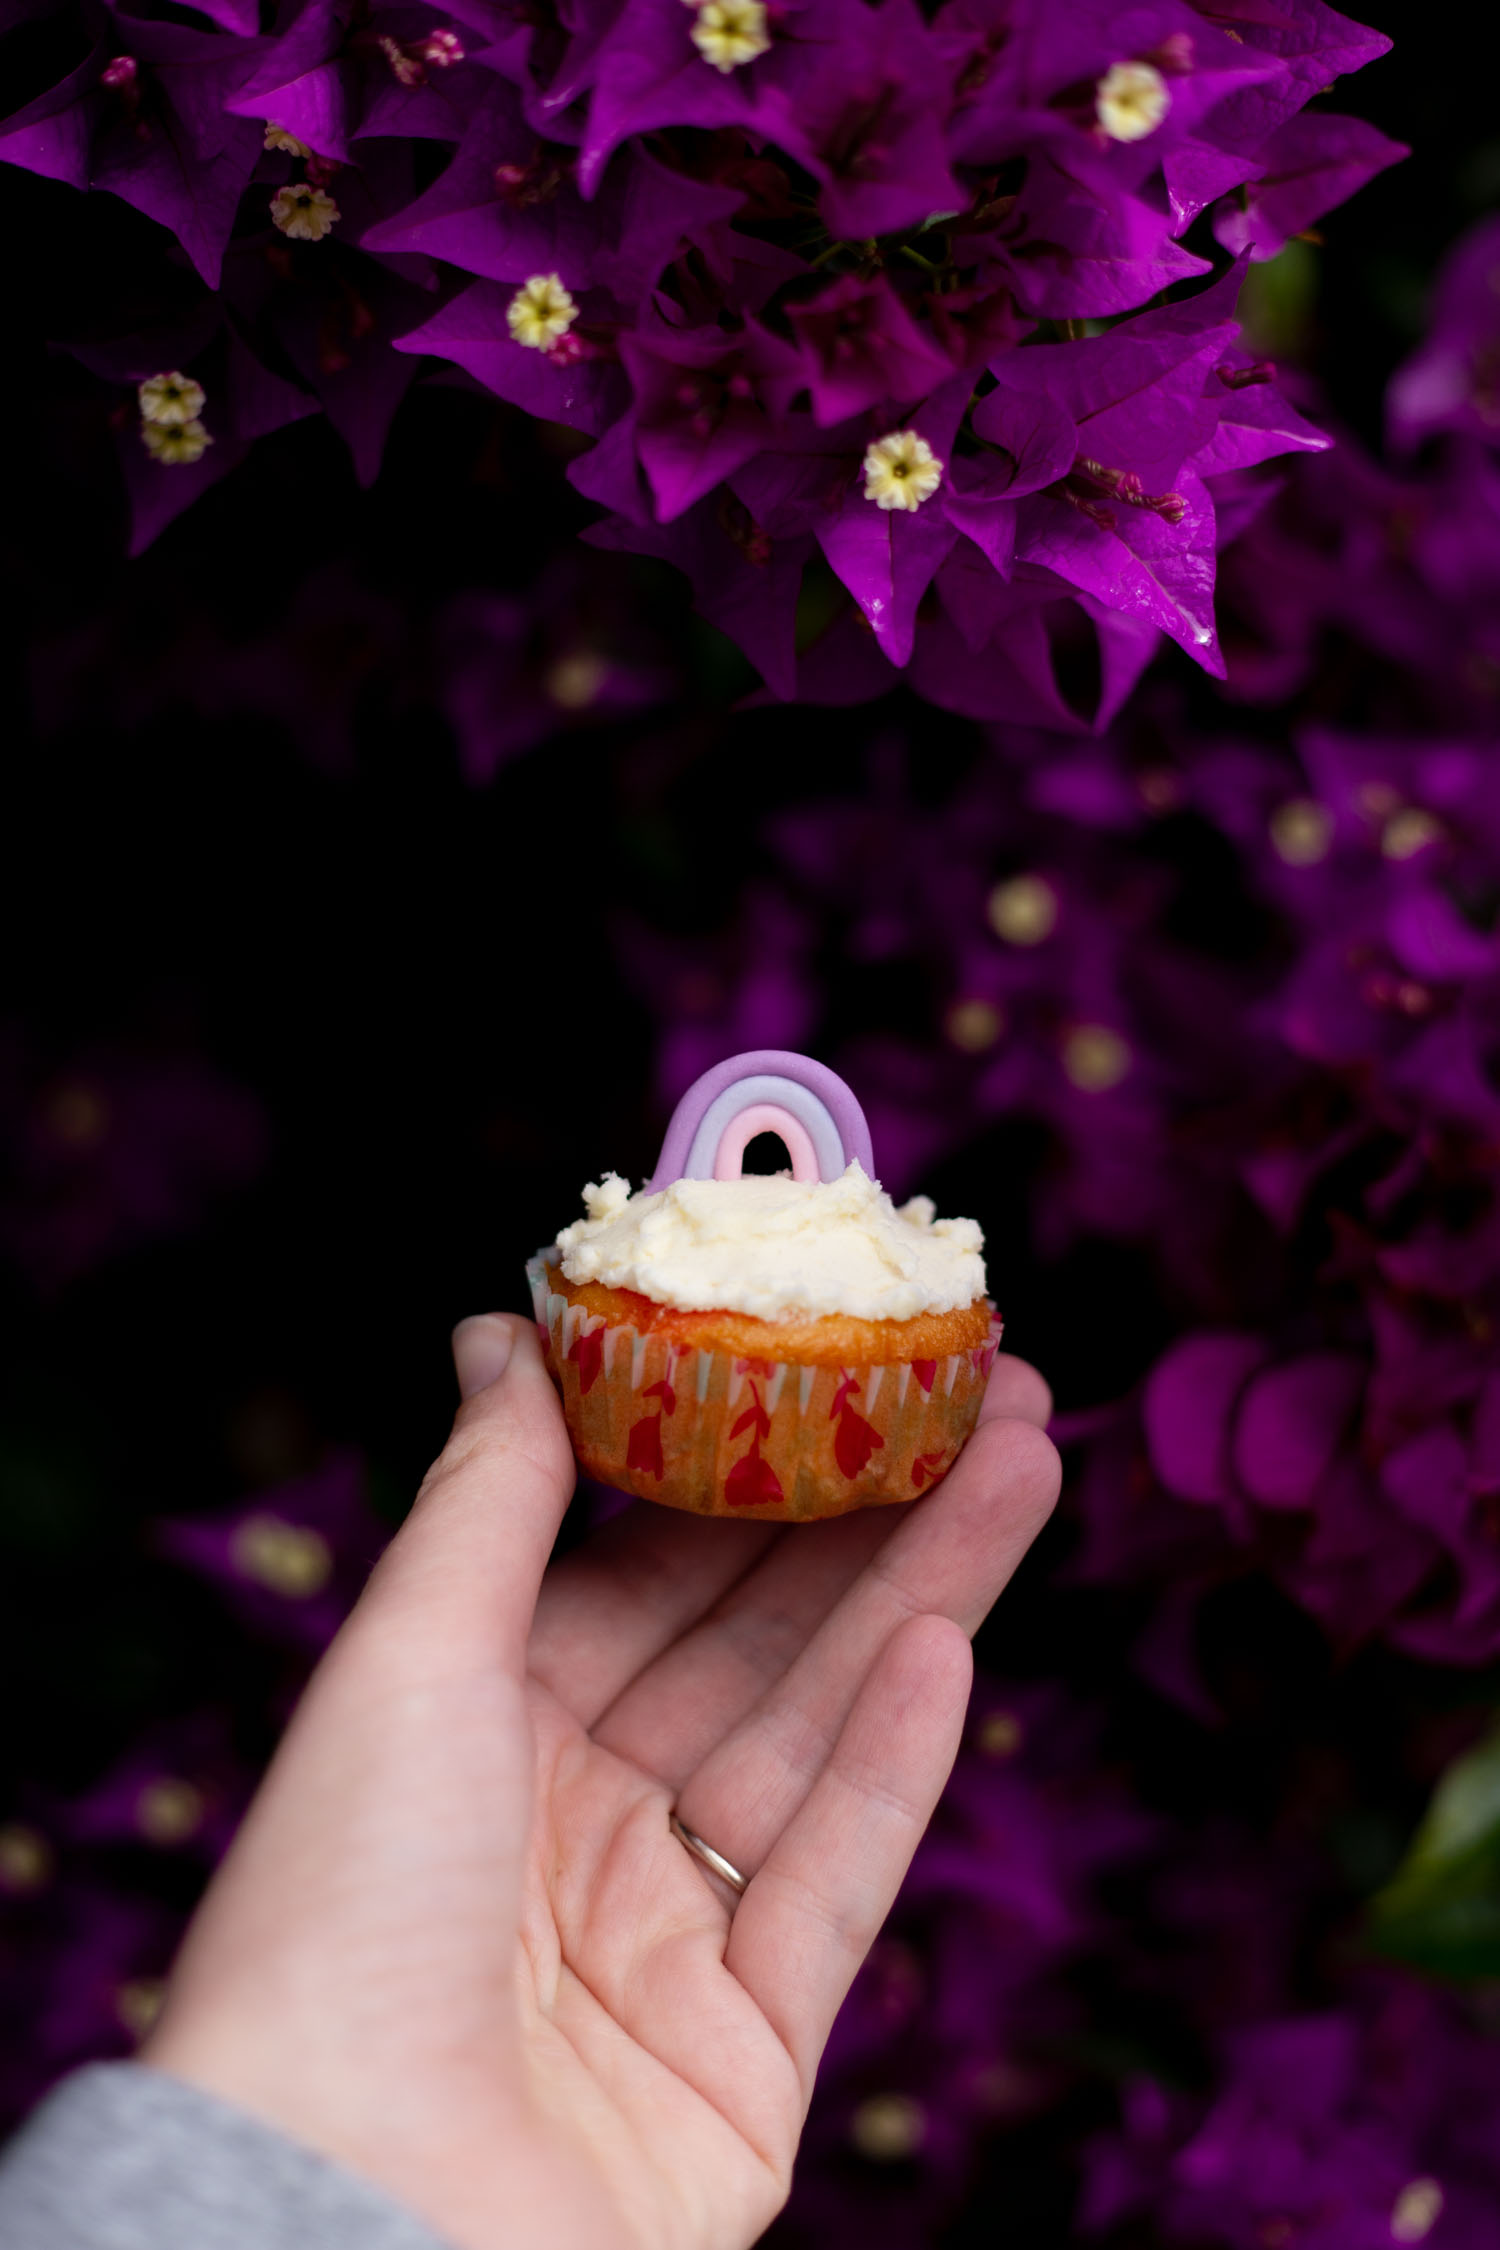 Cute Rainbow Birthday Party Cupcake Topper - DIY made from Fondant Icing